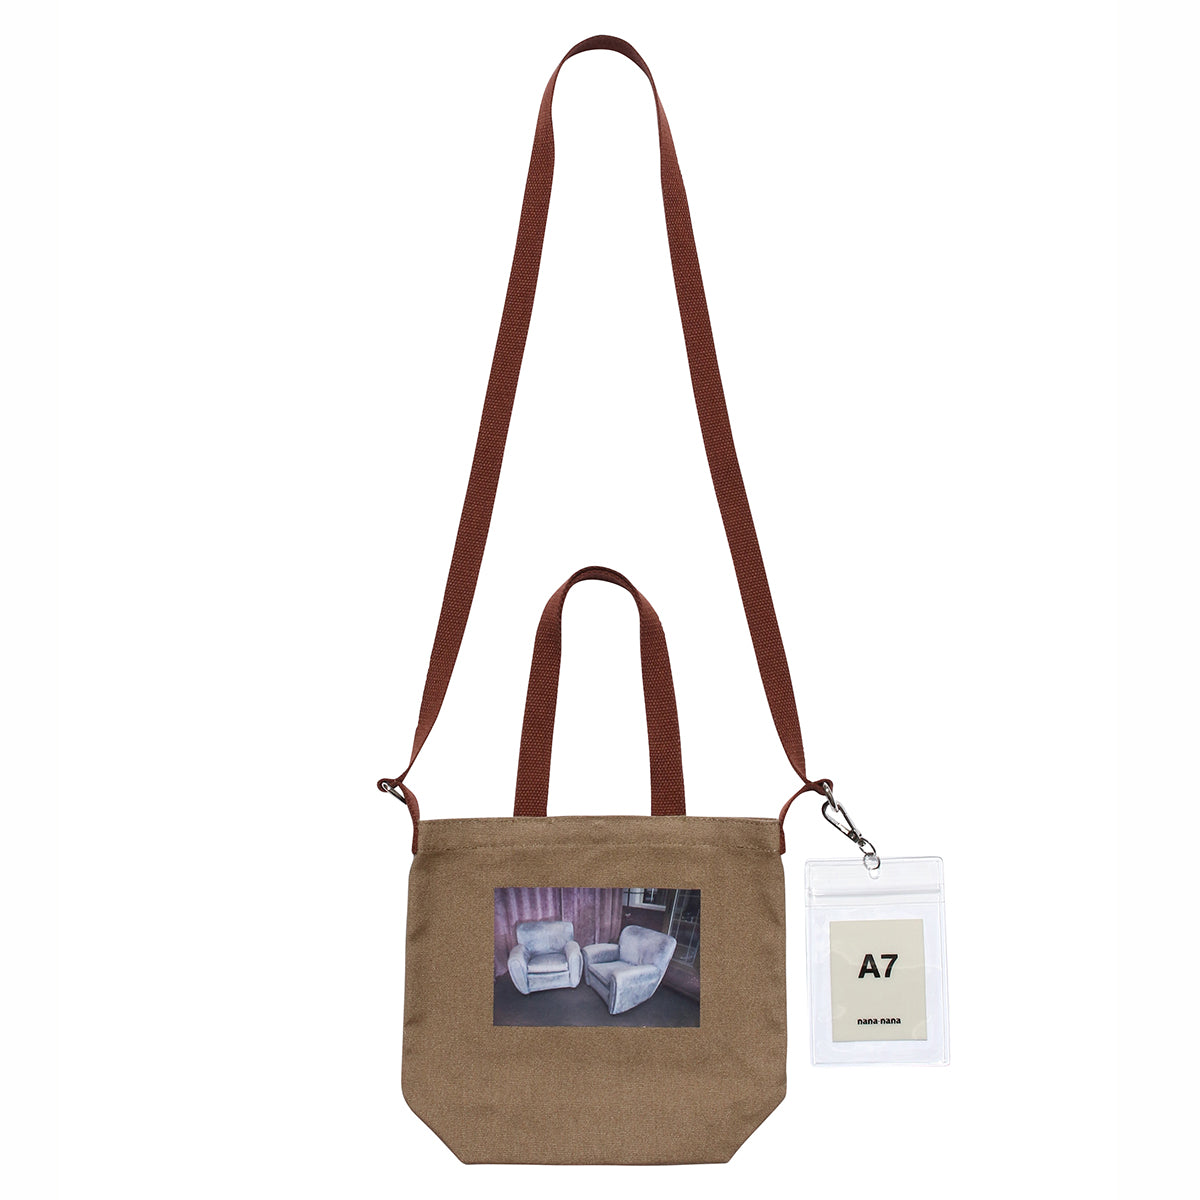 ROOM / S (TOTE BAG)